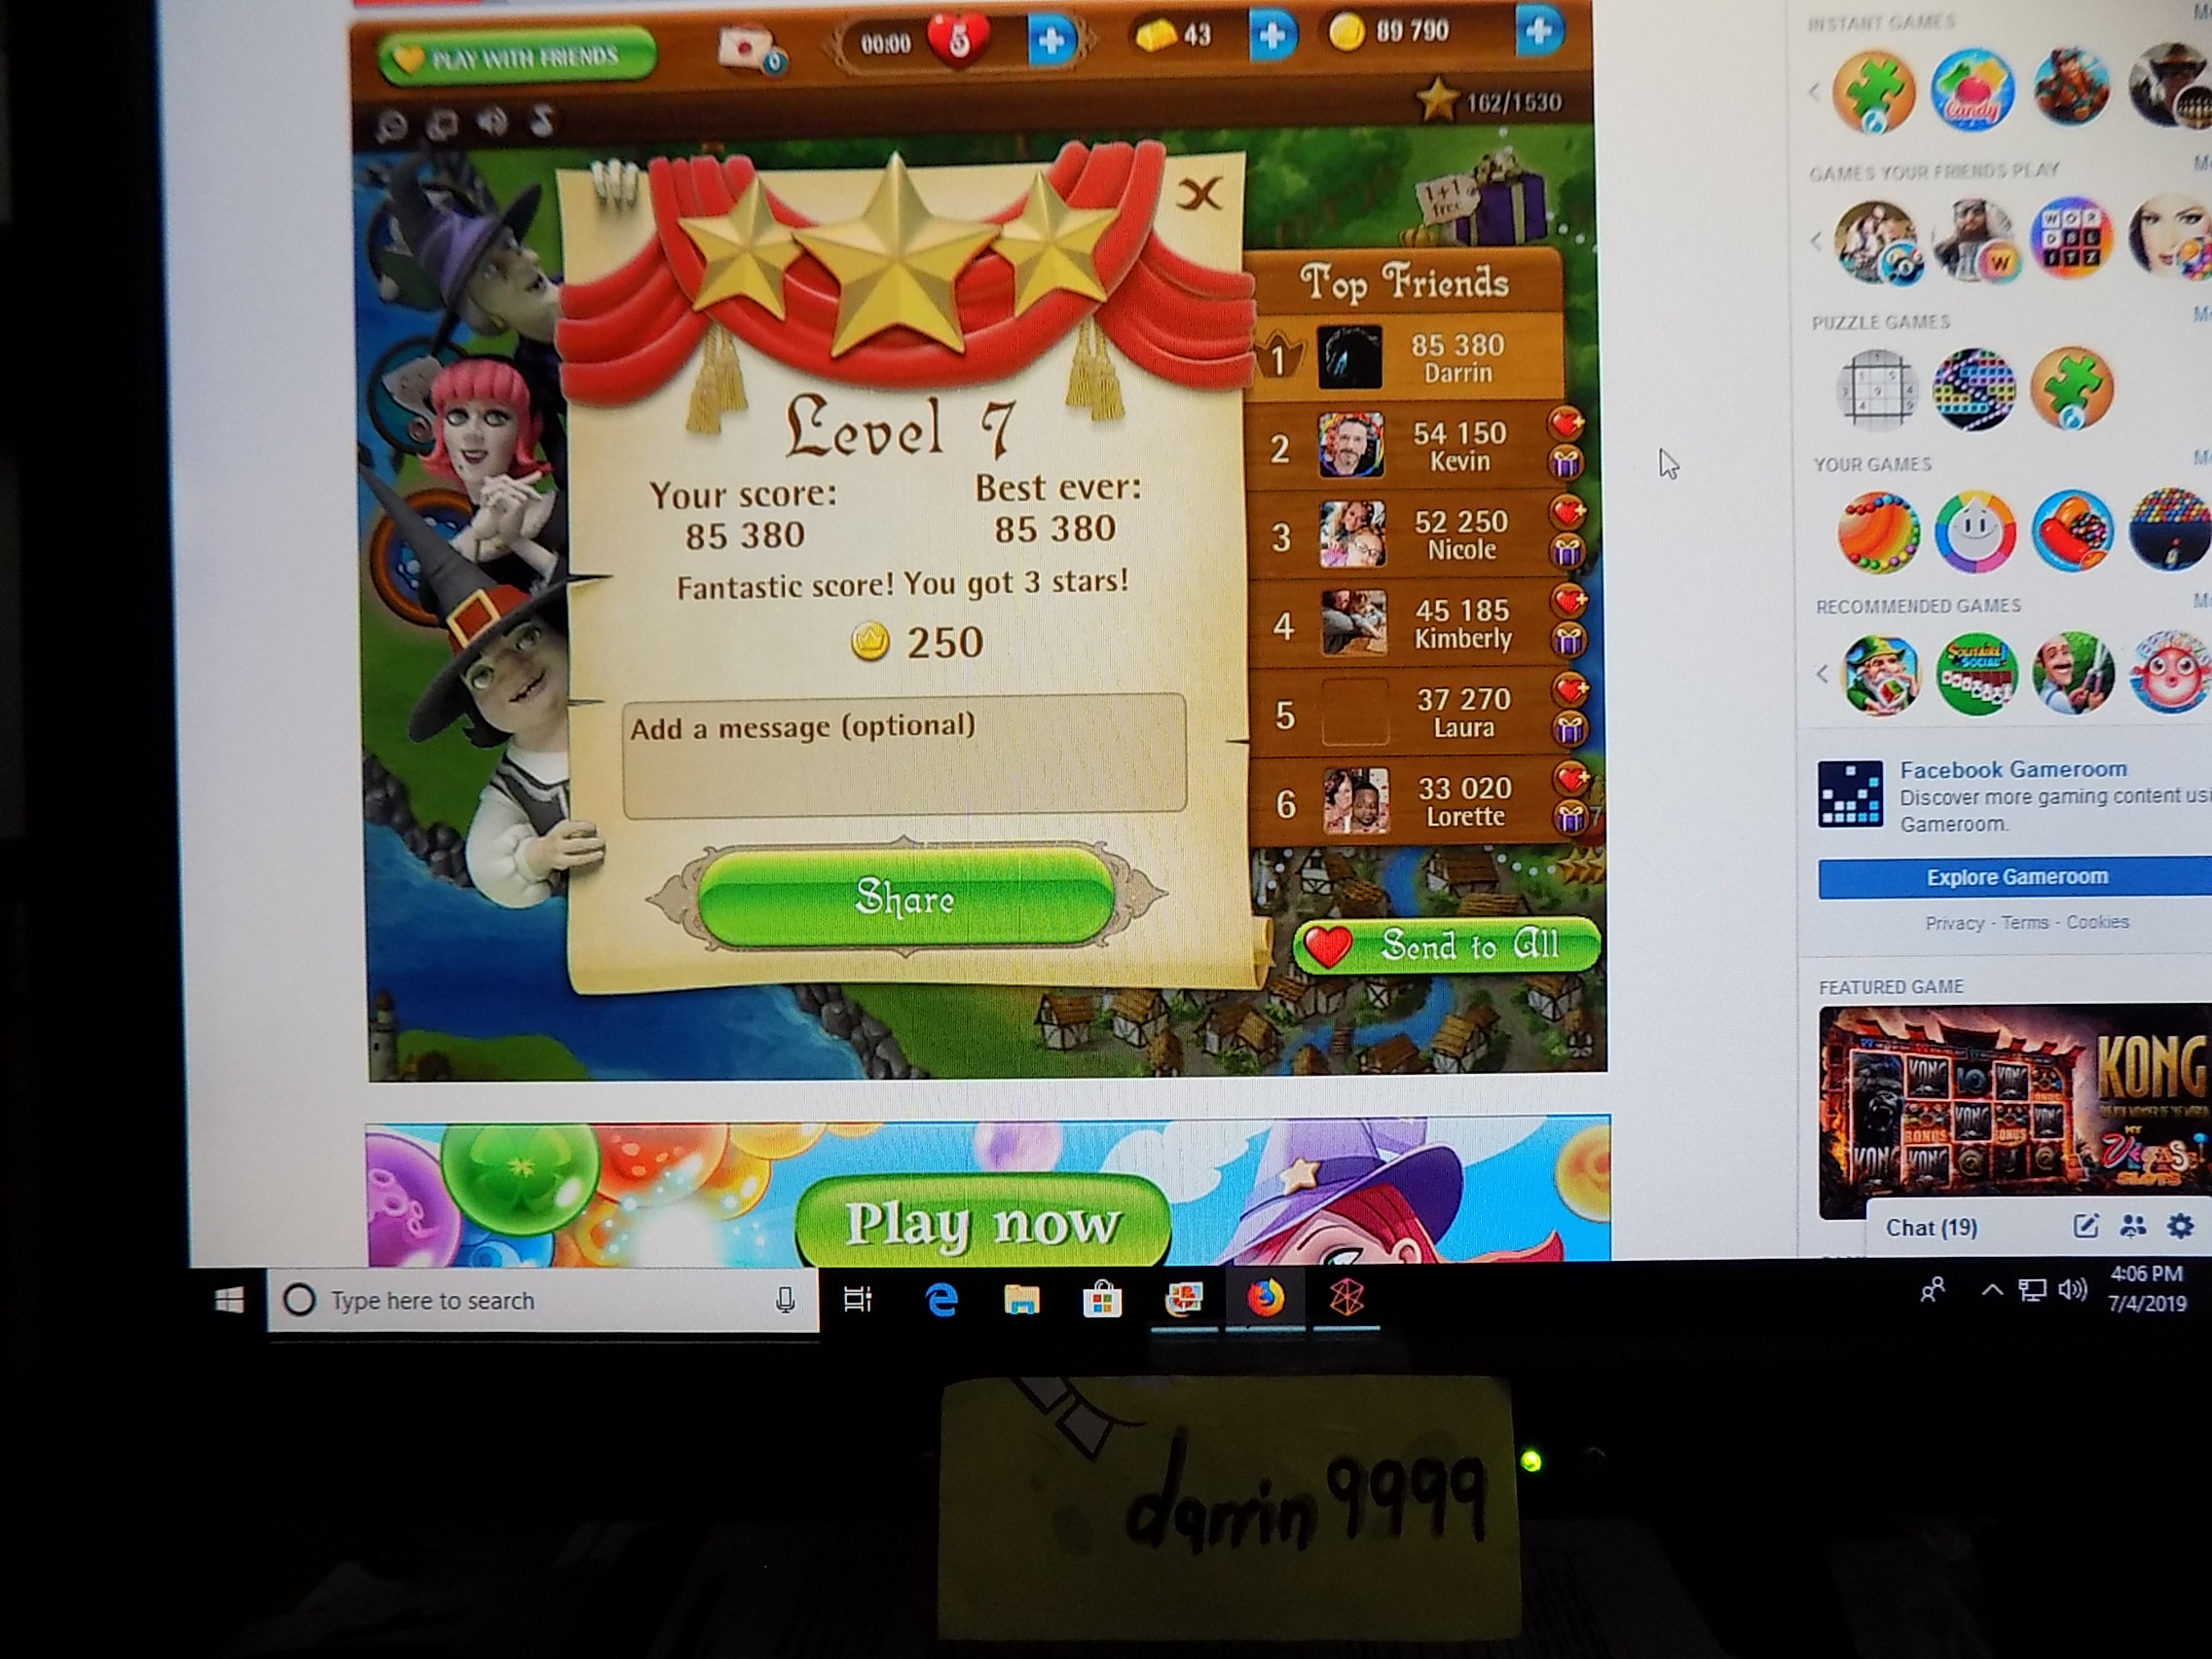 darrin9999: Bubble Witch Saga: Level 7 (Web) 85,380 points on 2019-07-04 15:07:27